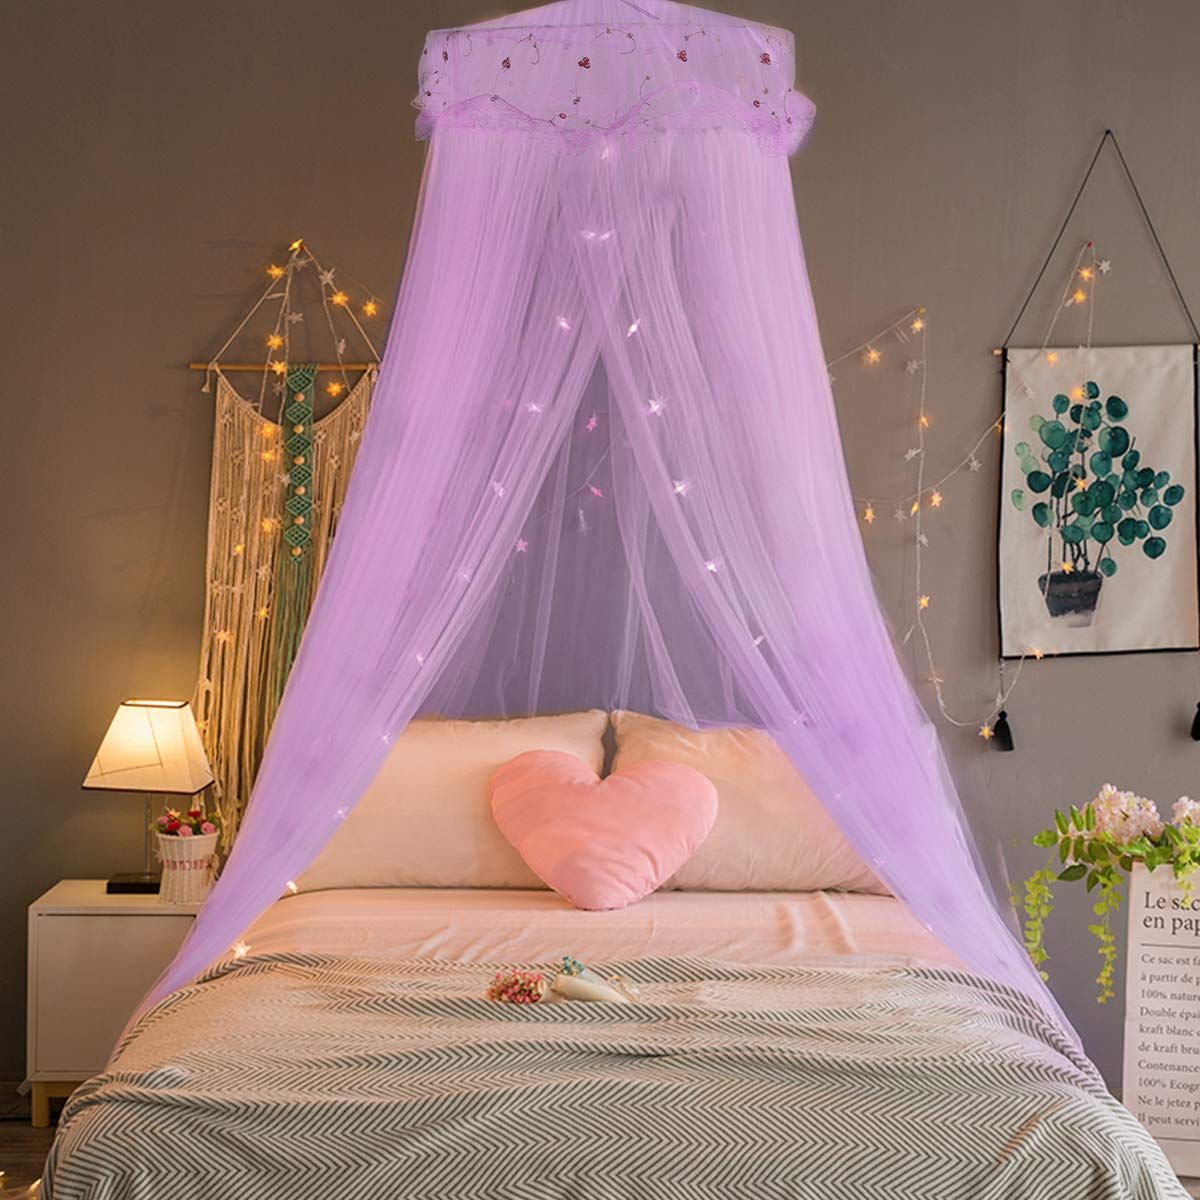 Jeteven Girl Bed Canopy Lace Mosquito Net for Girls Bed, Princess Play Tent Reading Nook Round Lace Dome Curtains Baby Kids Games House-Purple